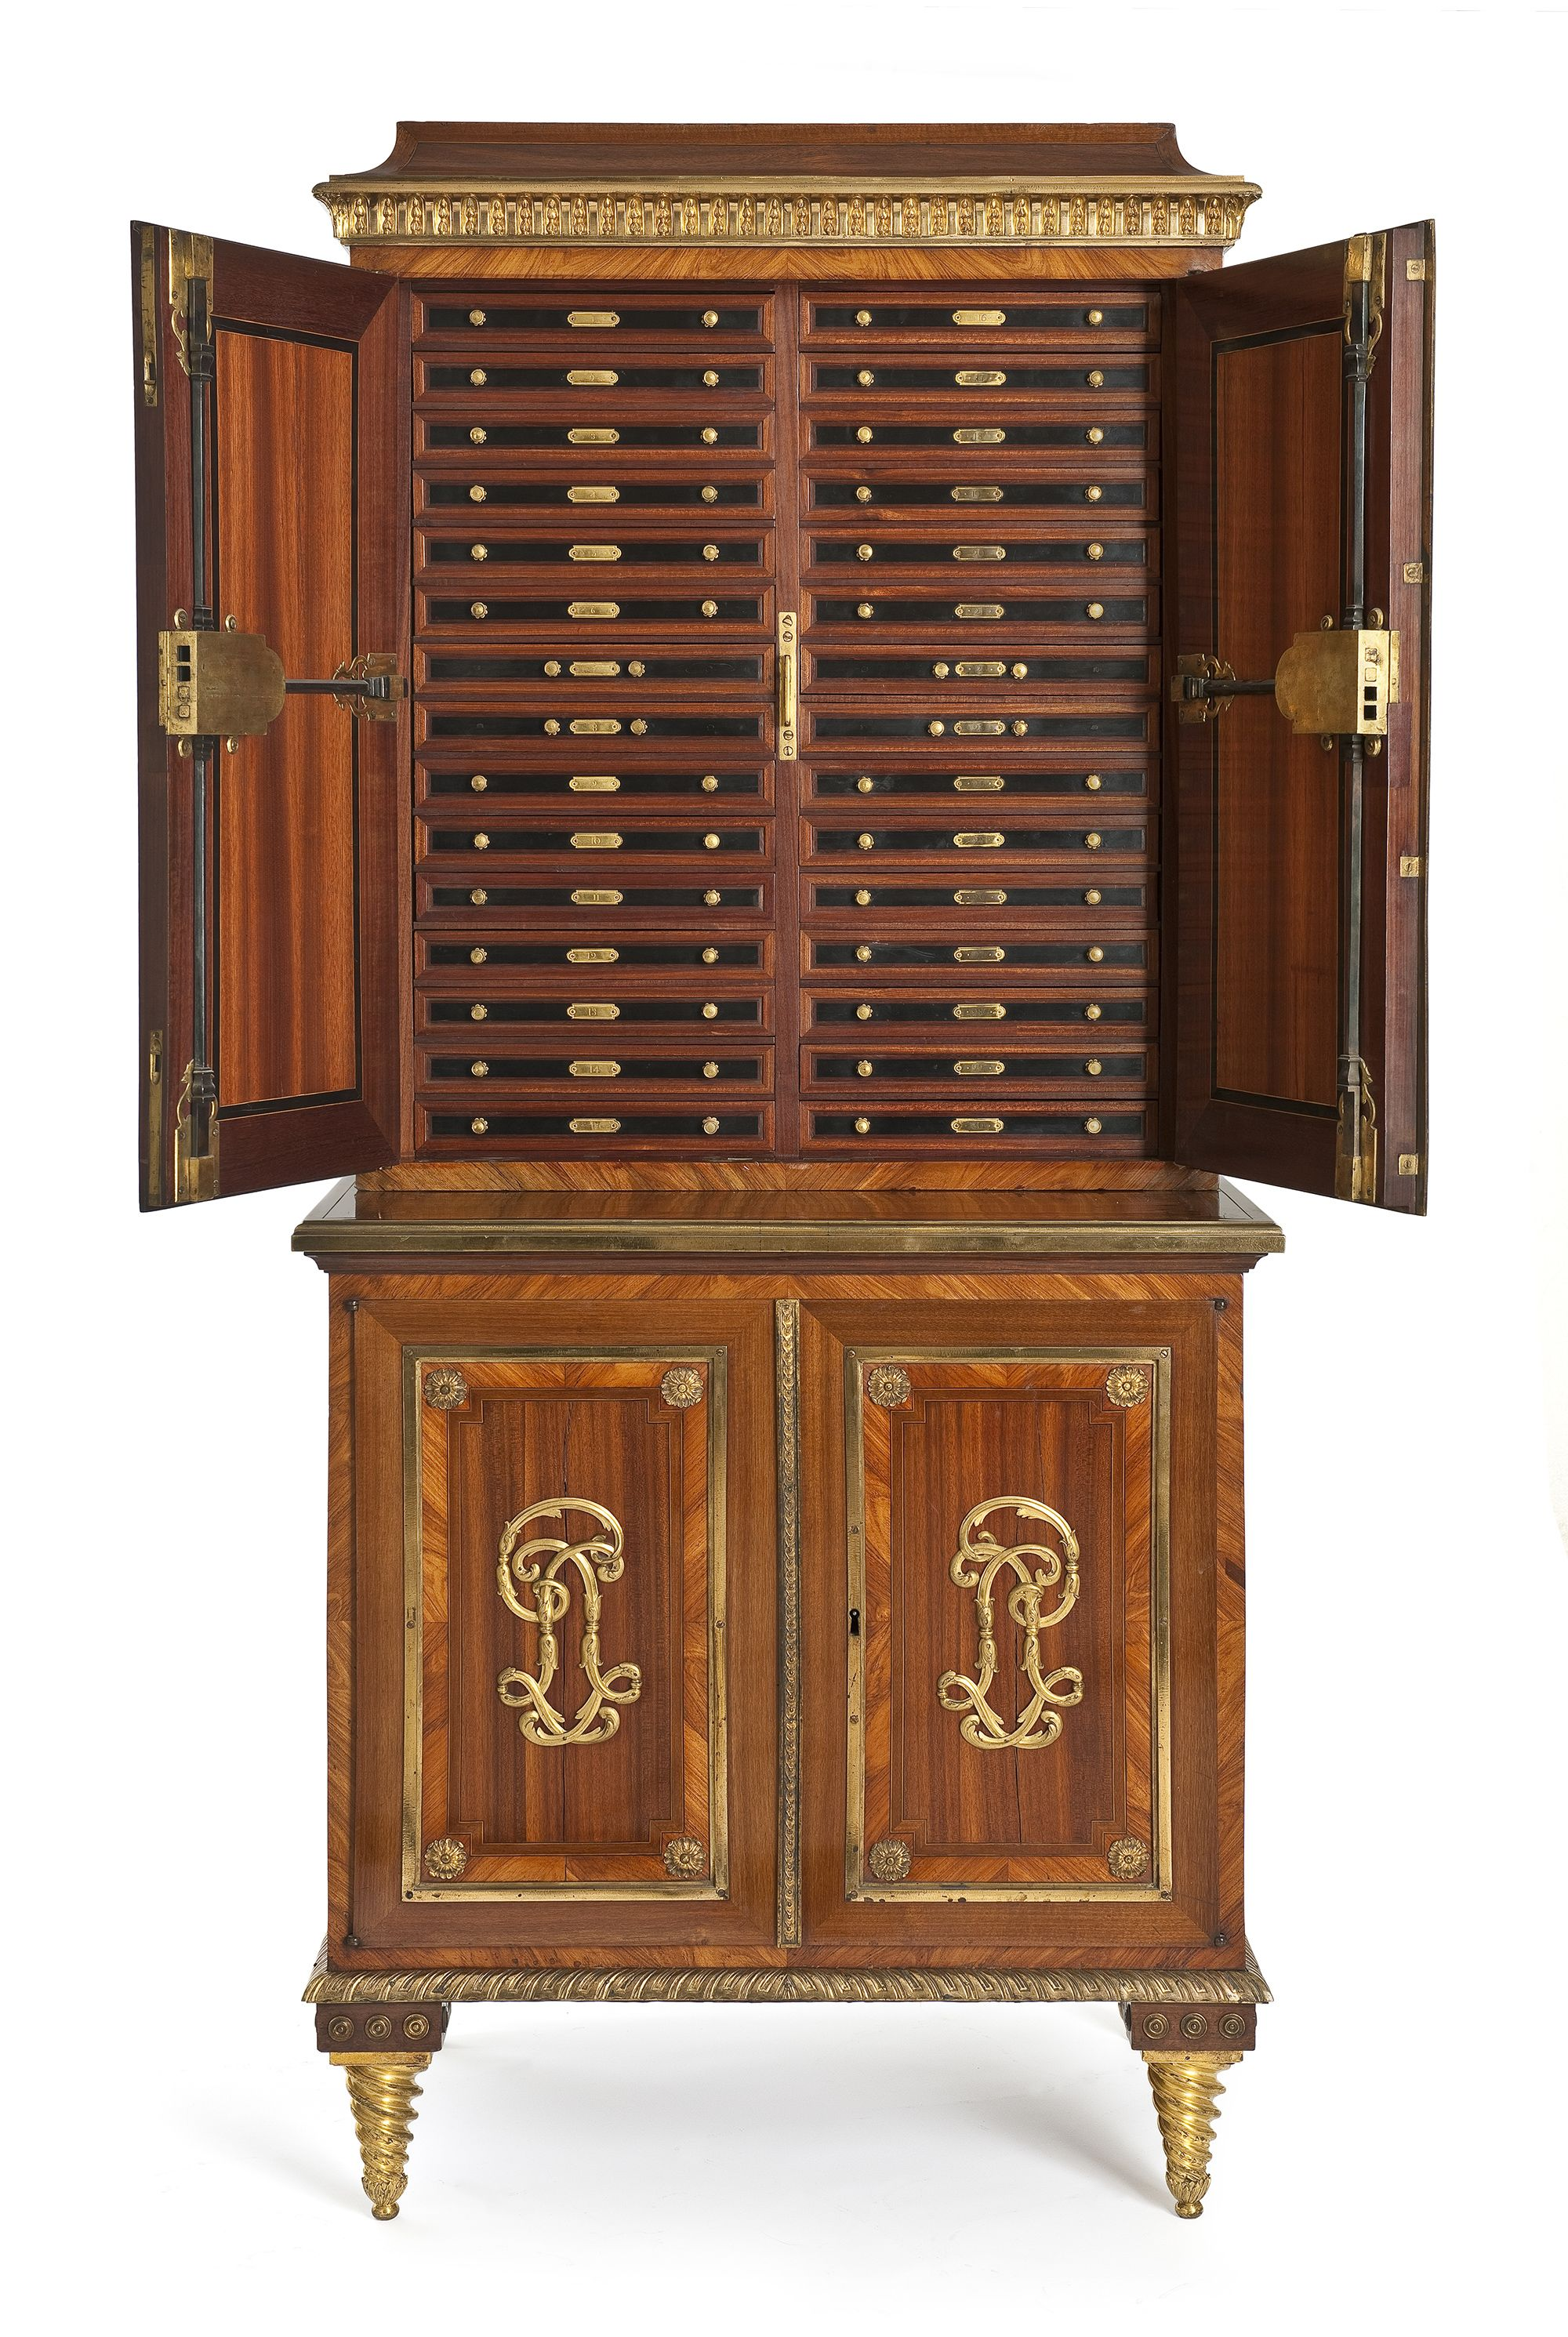 Award A Medal Paris Circa 1770 1775 Pierre Garnier Cabinet Frame Oak Veneer Satin Ebony Rosewood And Mobilier De France Meuble De Style Meuble De Metier